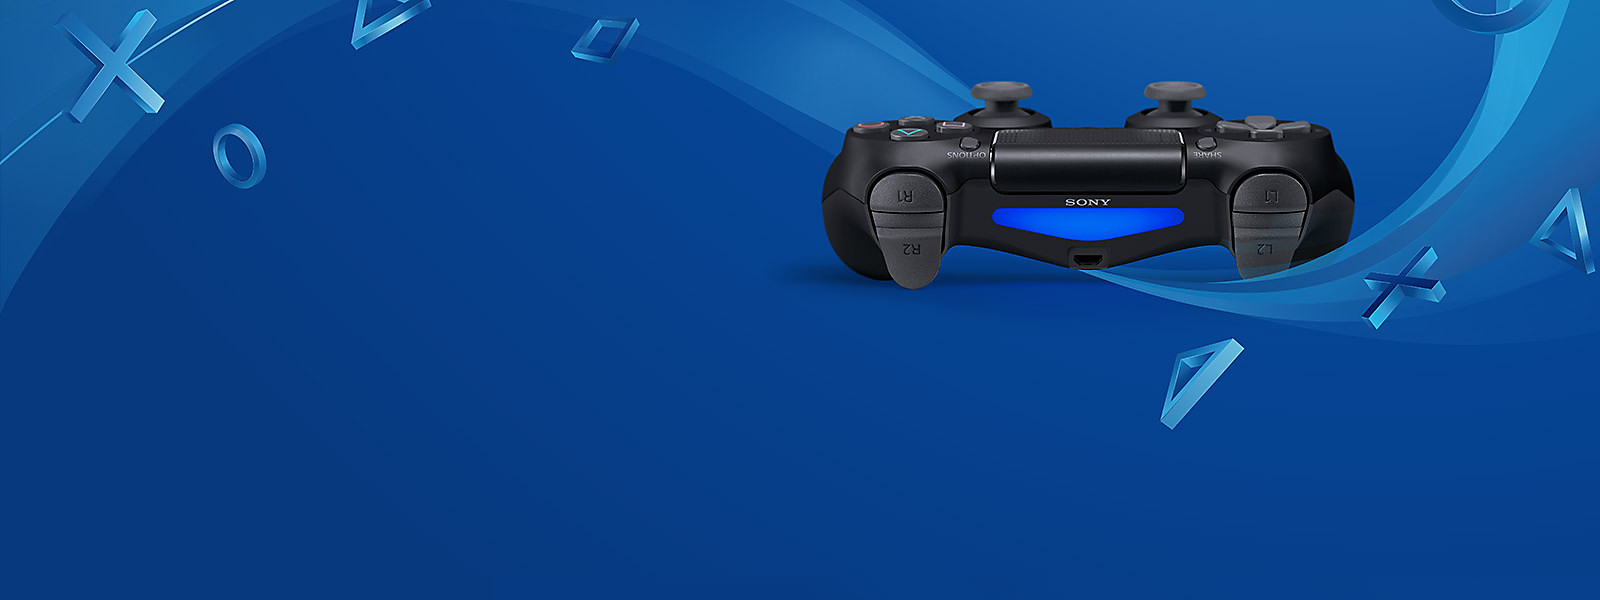 PlayStation 4 background image featuring DualShock 4 controller